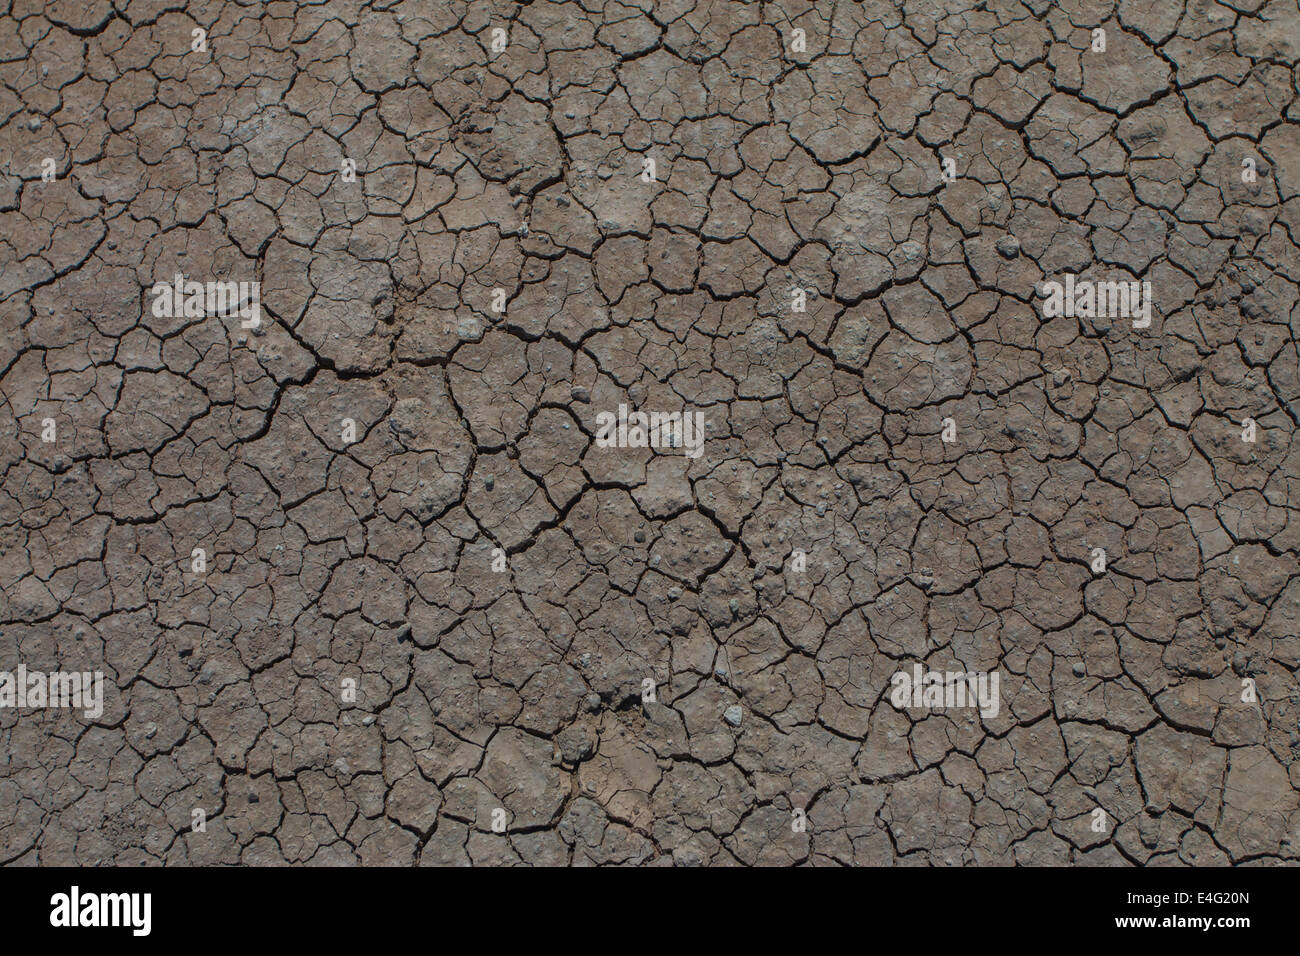 Dry cracked earth - Stock Image